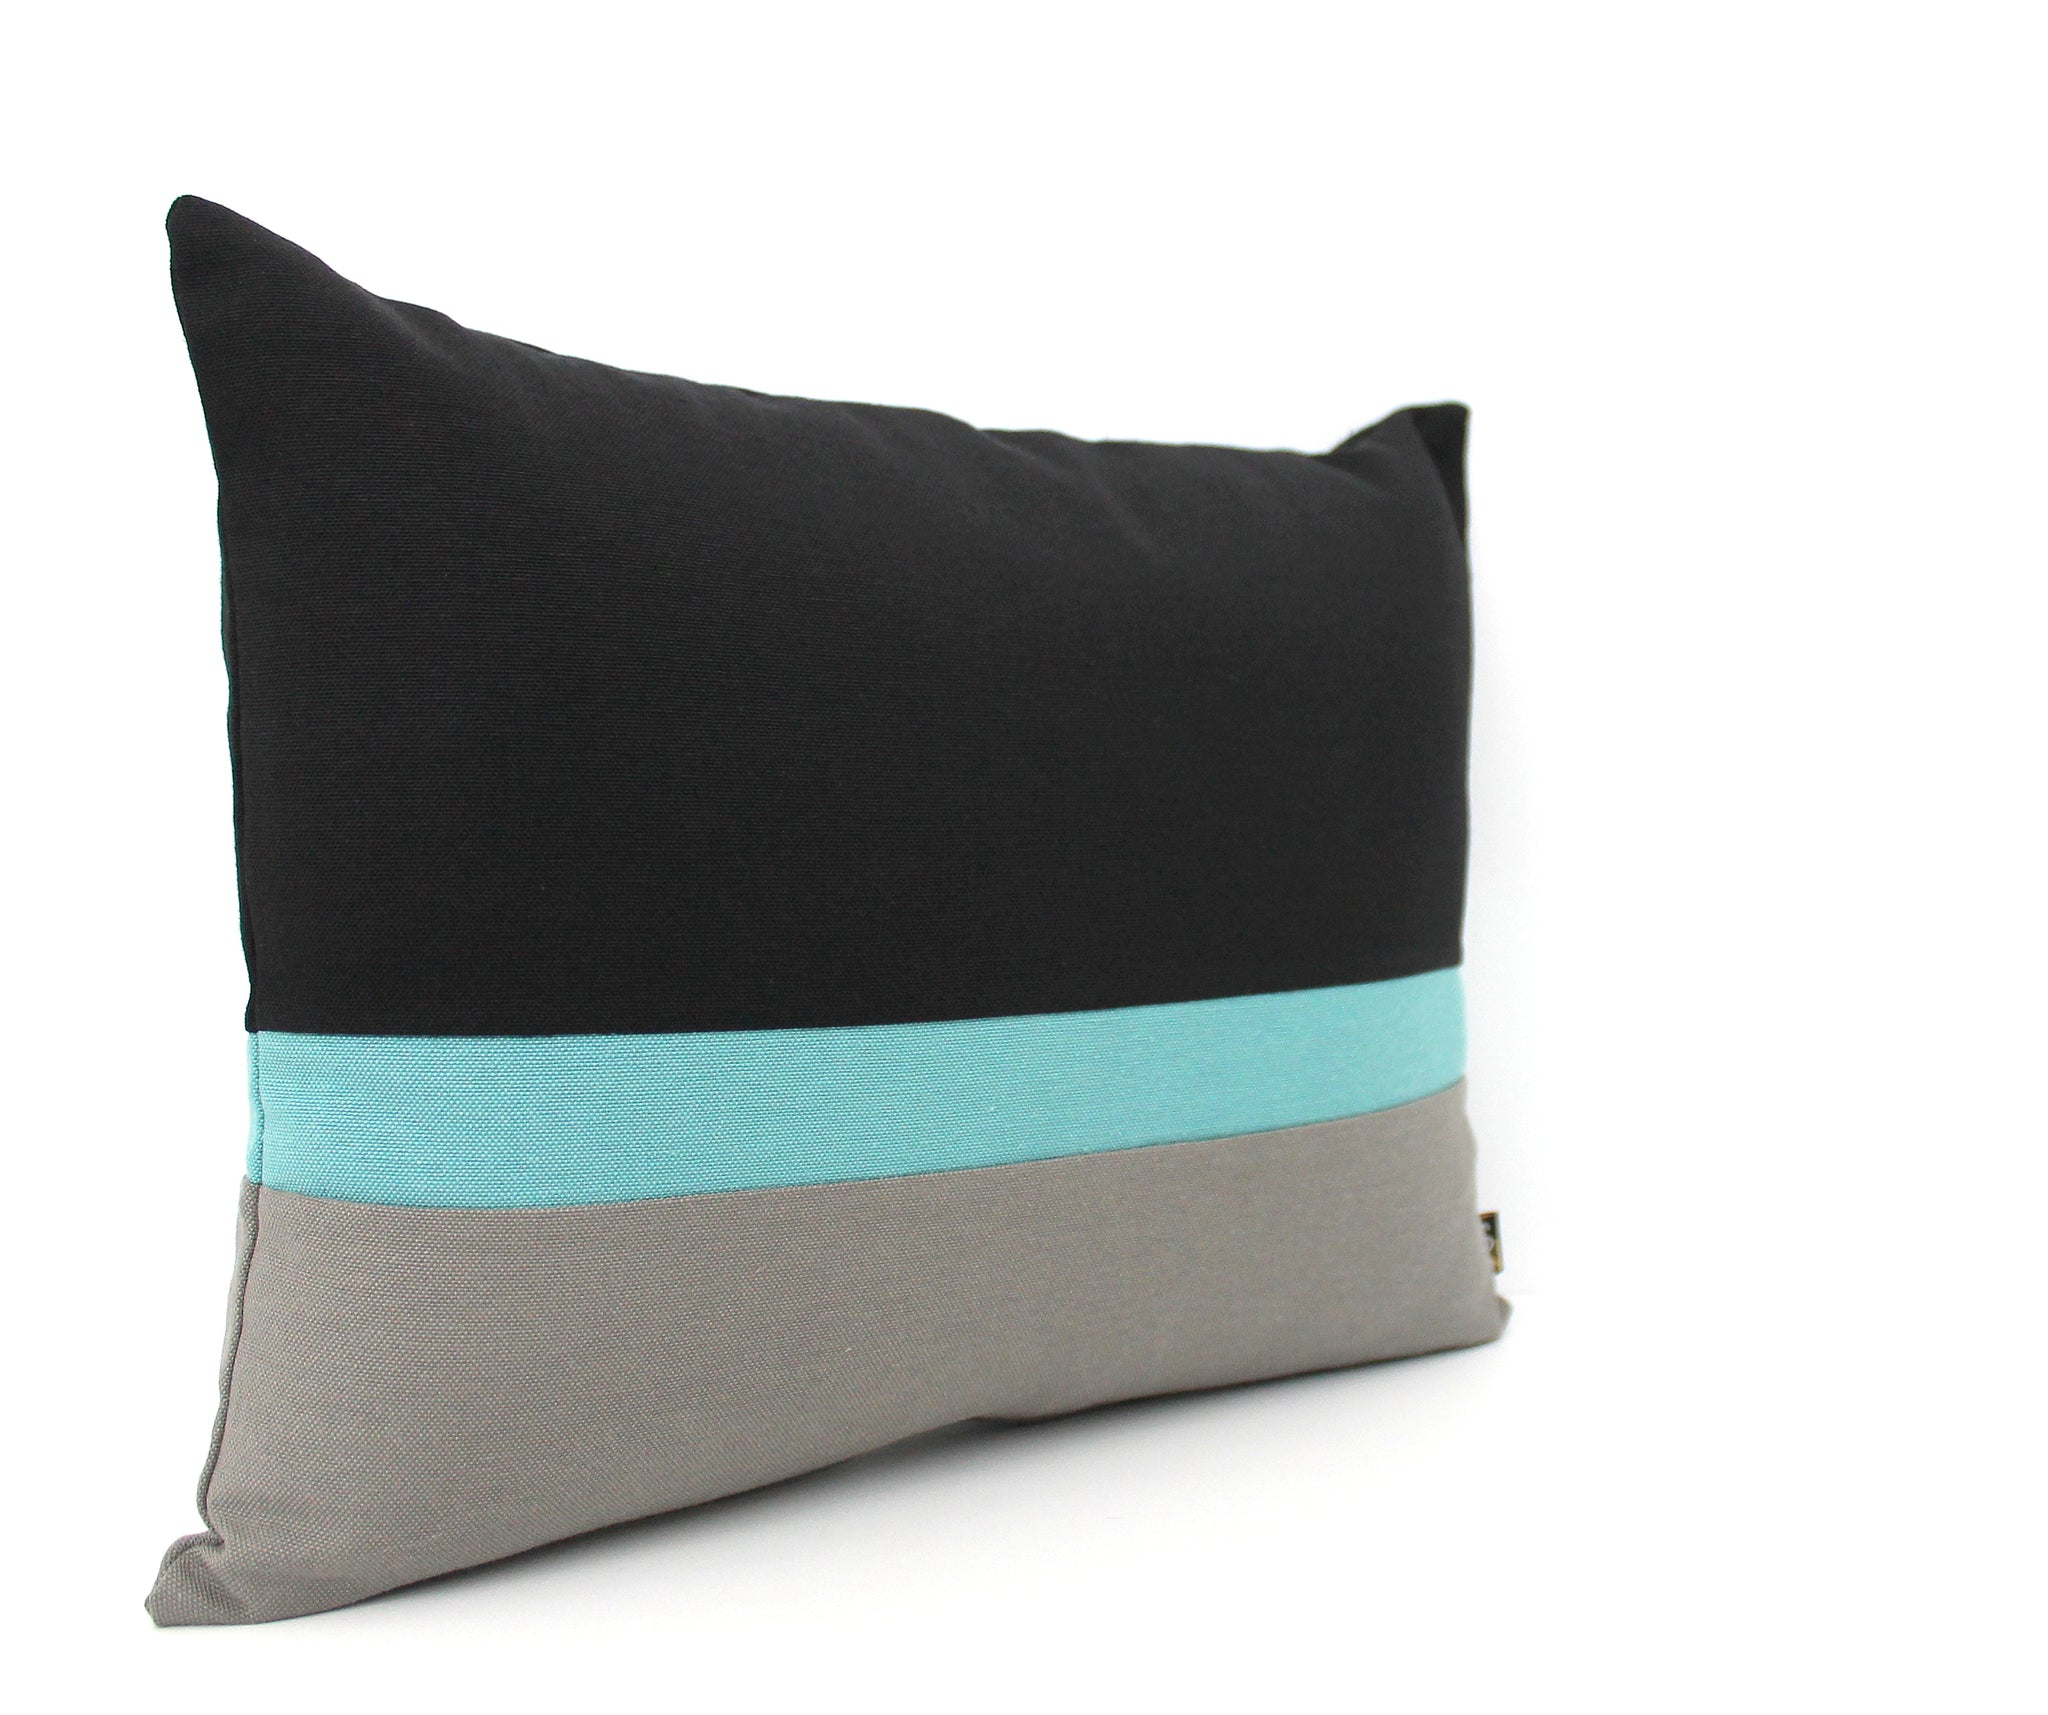 Black Light Teal And Grey Colorblock Pillow Covers All Sizes Sndsigns